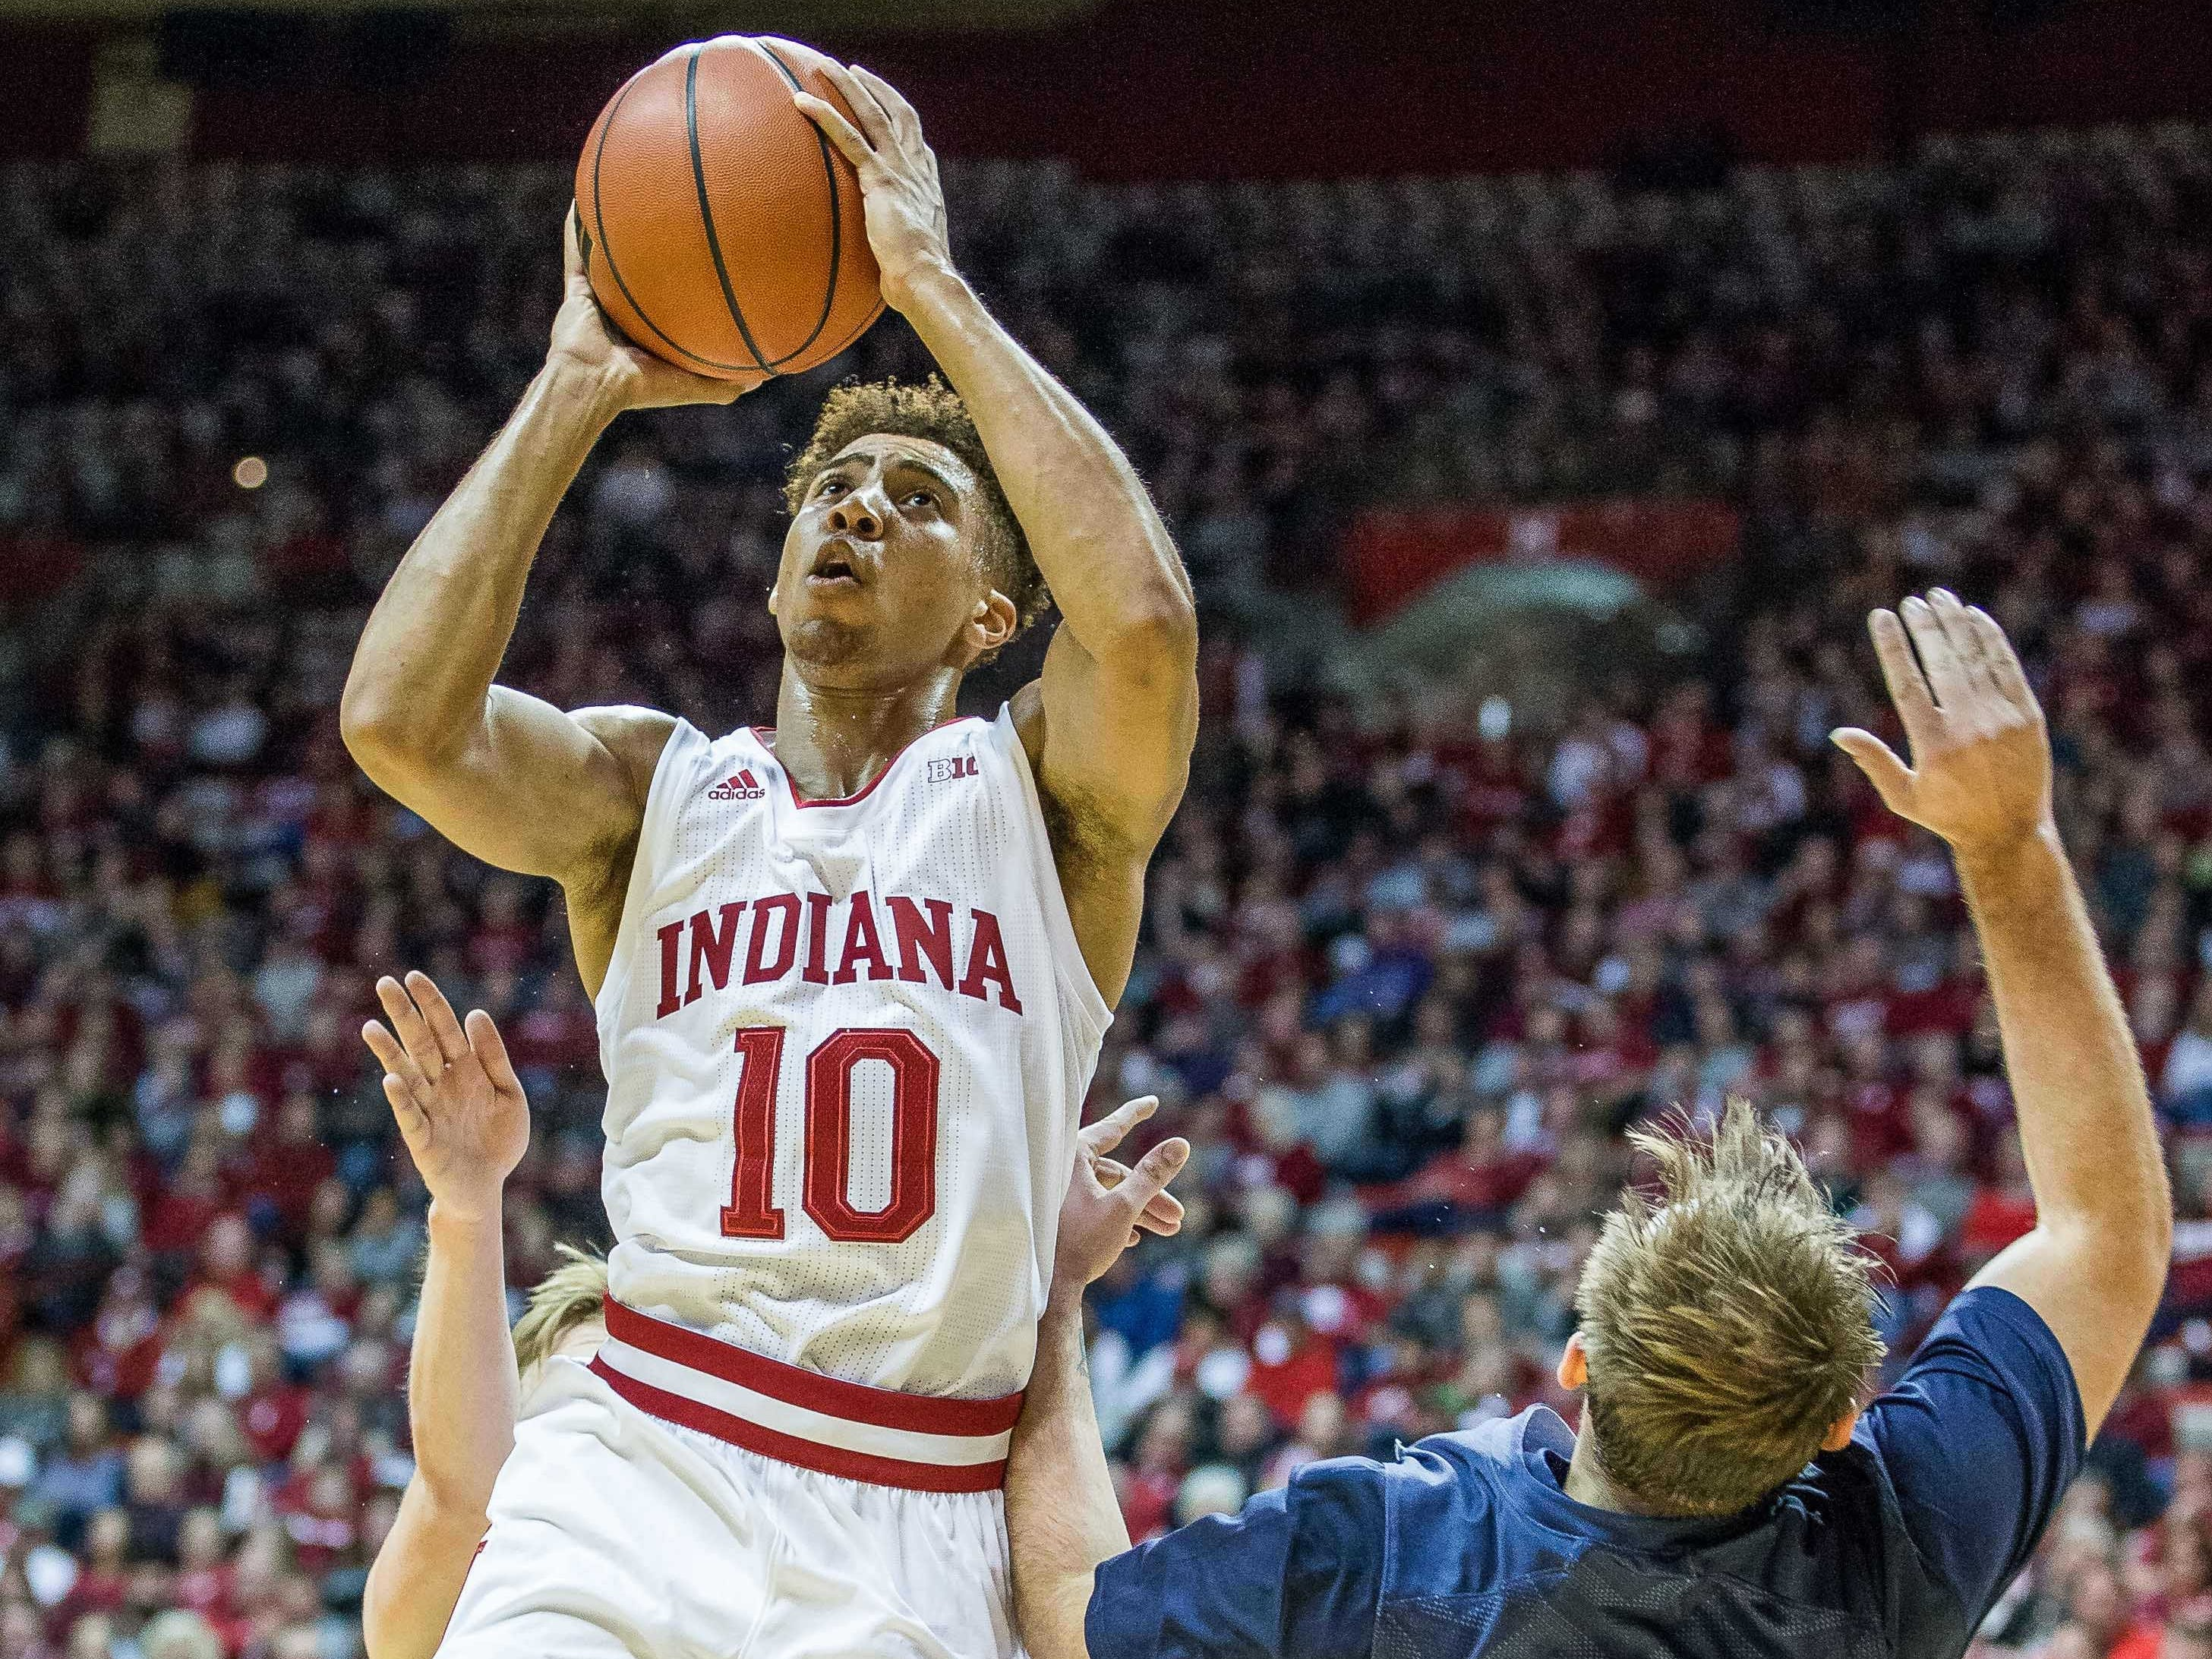 Indiana Hoosiers guard Rob Phinisee (10) shoots the ball while Montana State Bobcats center Sam Neumann (4) defends in the first half at Assembly Hall.